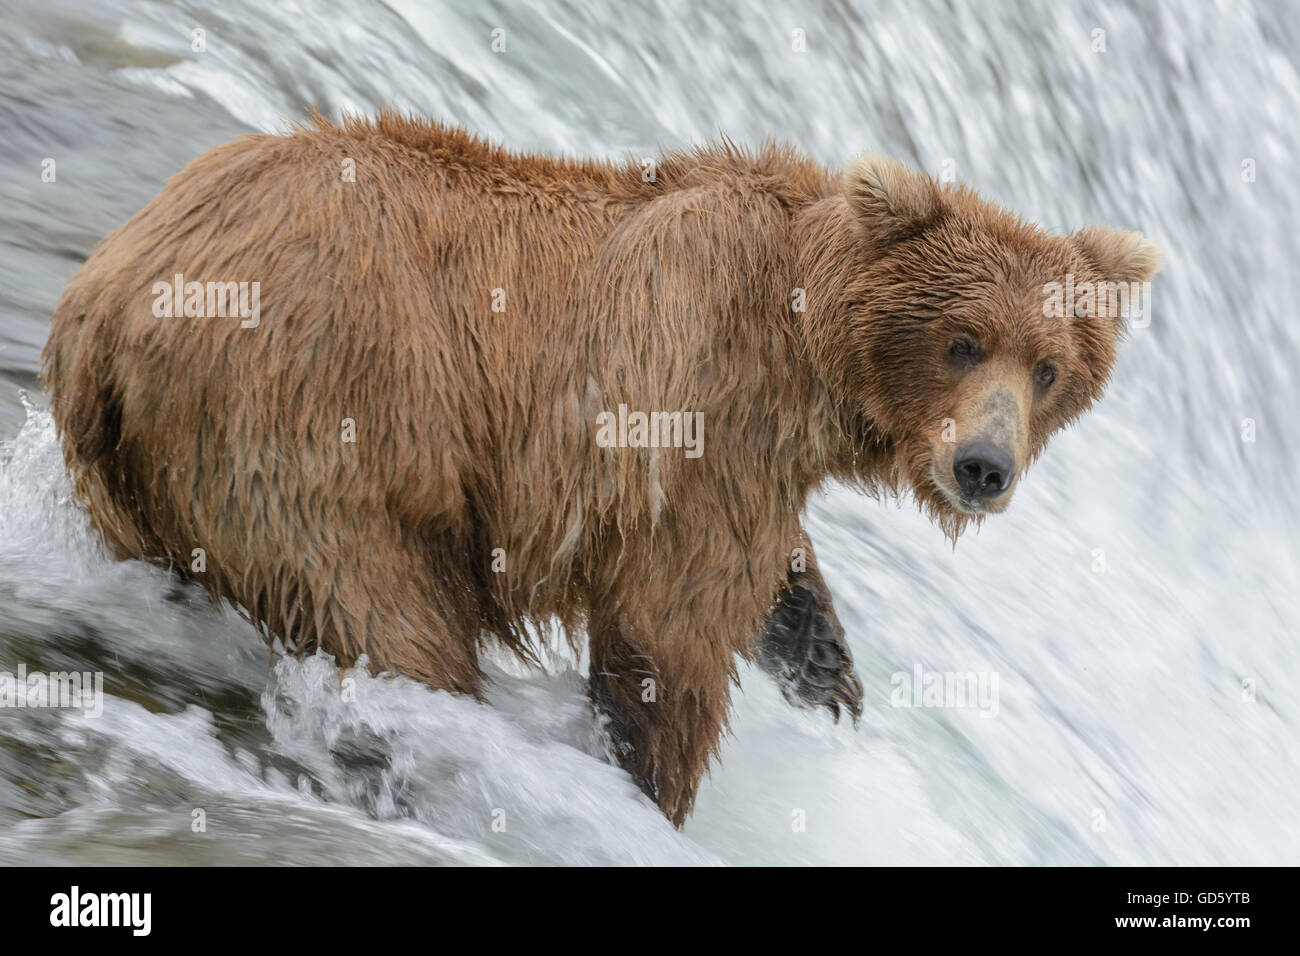 Grizzly bear catching salmon at the top of a waterfall. Brook Falls, Alaska - Stock Image